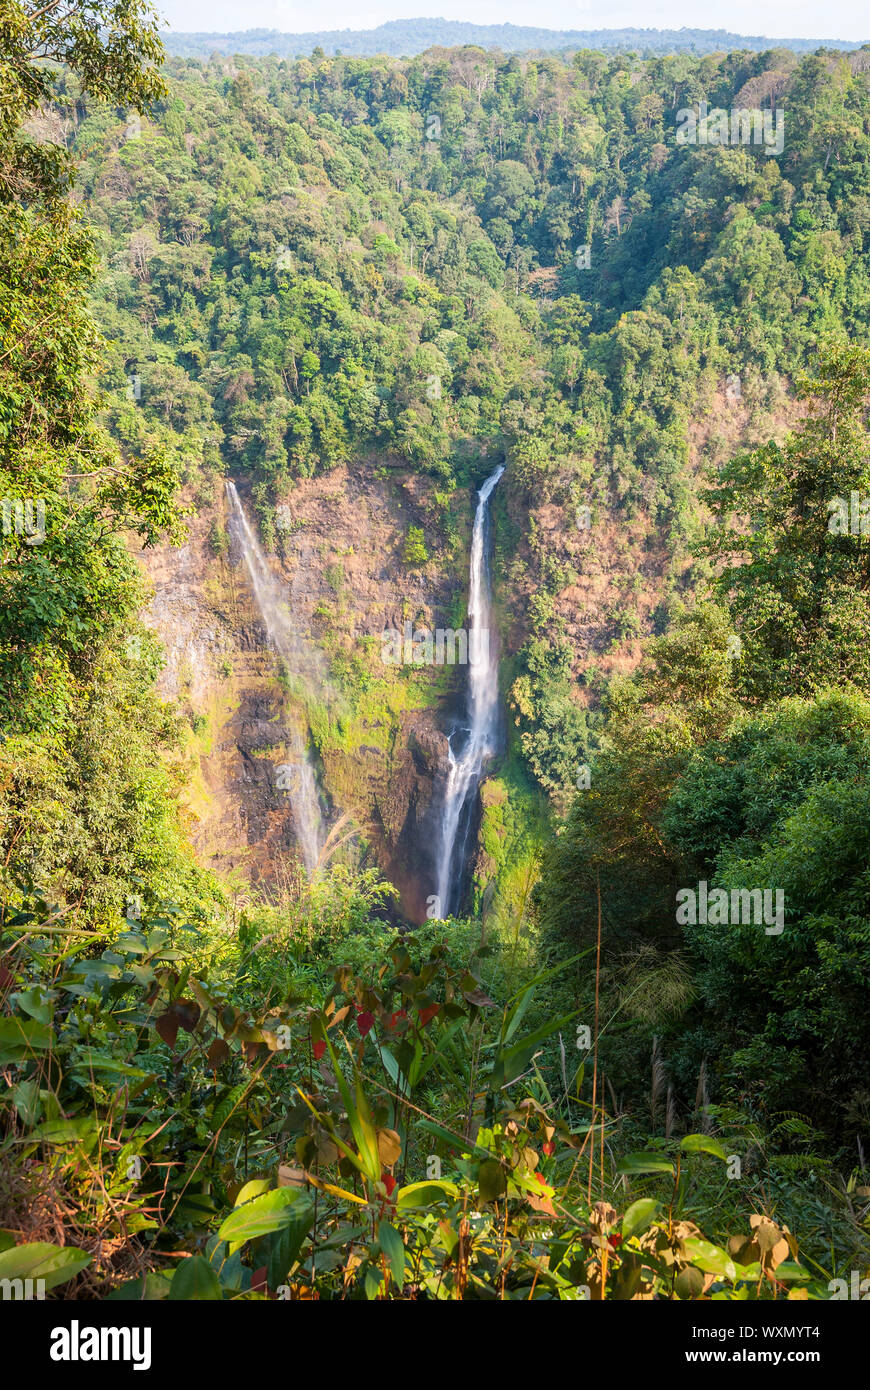 Stunning Tad Fane waterfall from above, Paksong, Laos Stock Photo